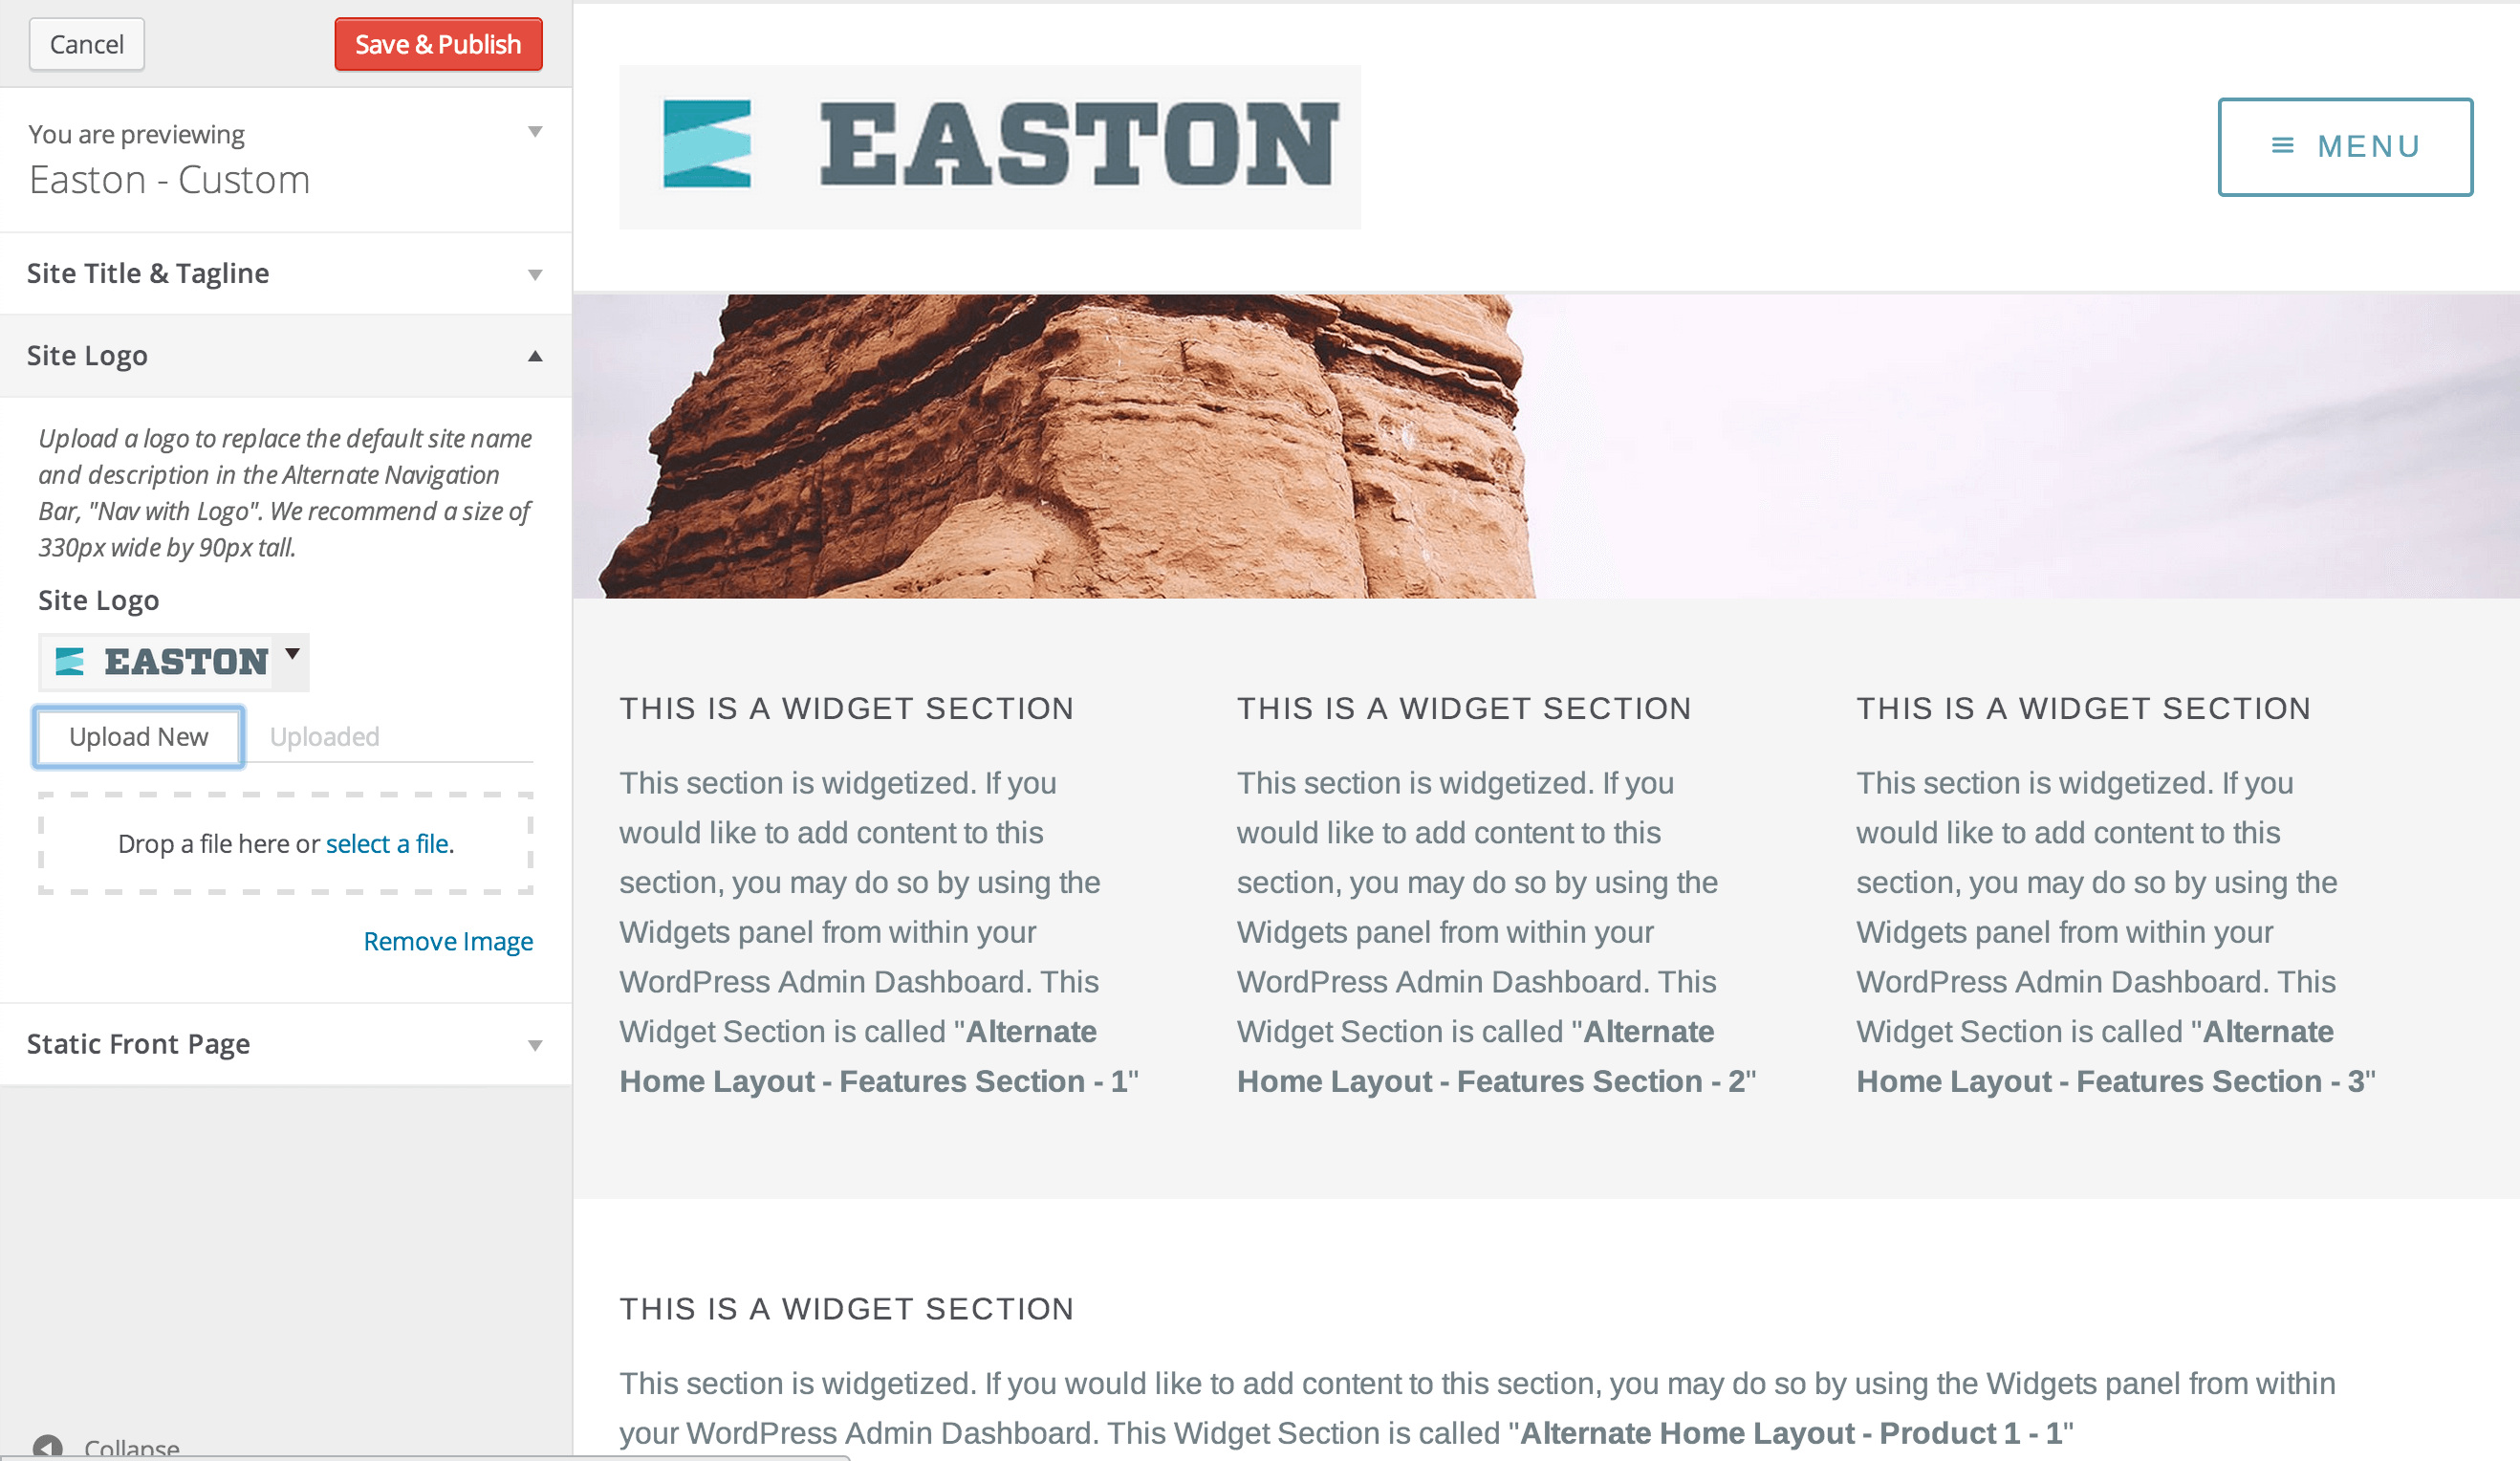 builder-easton-title-tagline-site-logo